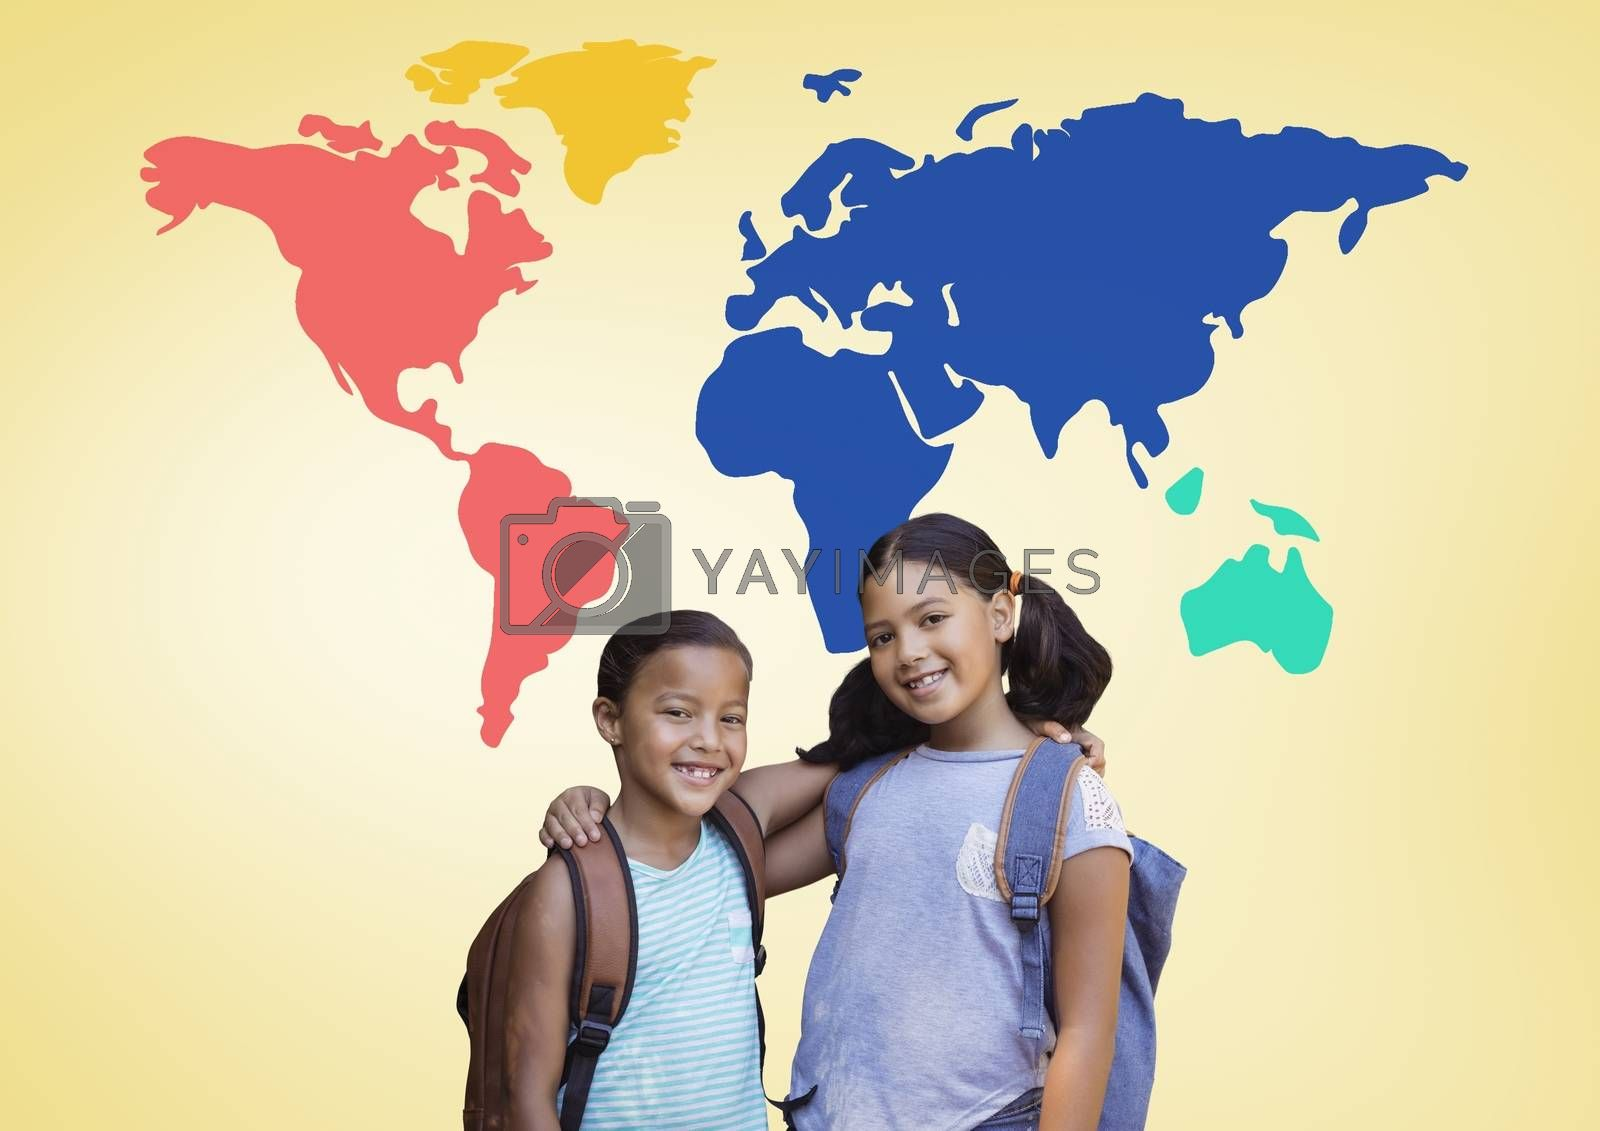 School Kids hugging in front of colorful world map by Wavebreakmedia